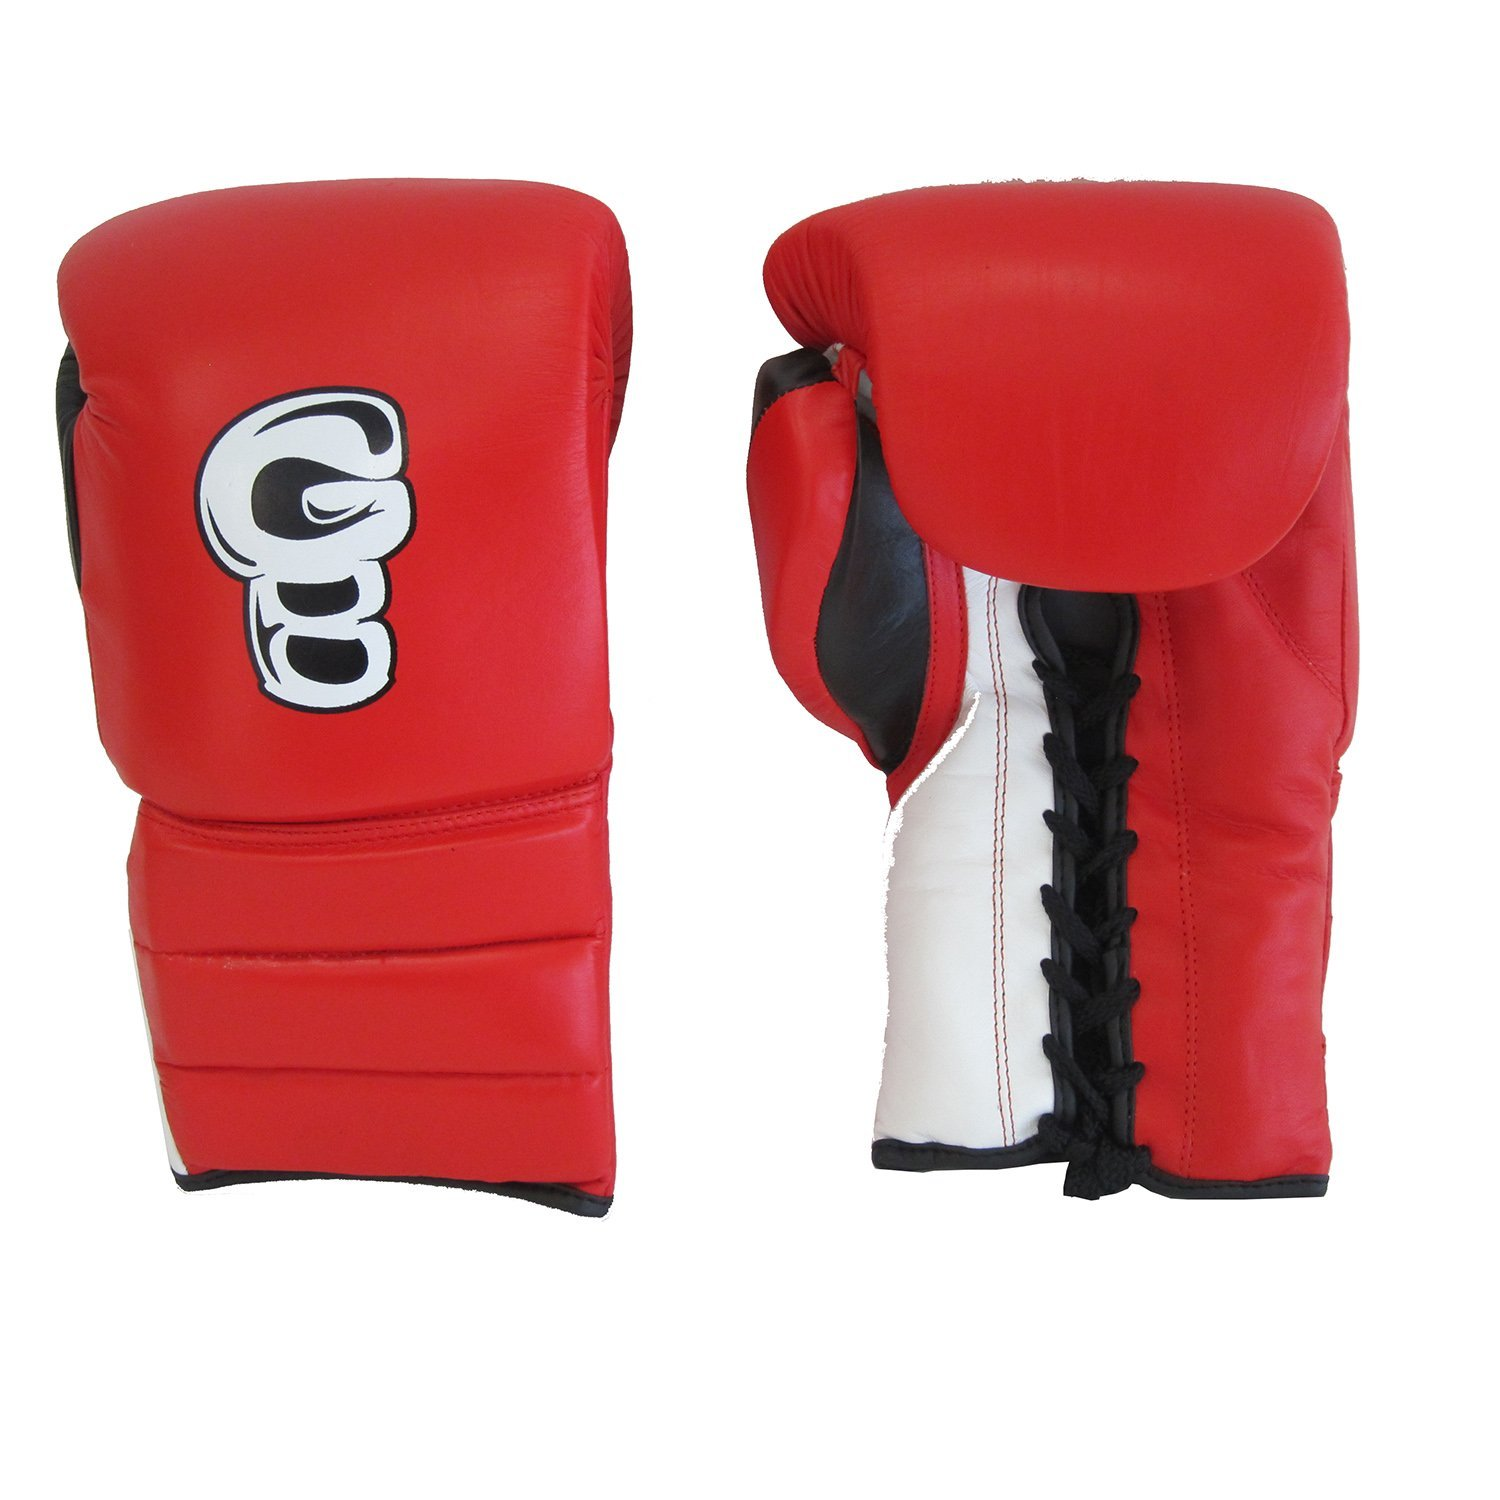 GRANT BOXING PROFESSIONAL BOXING SPARRING GLOVES IN JAPANESE COMPOSITE WITH GERMAN SAS-TEC TECHNOLOGY